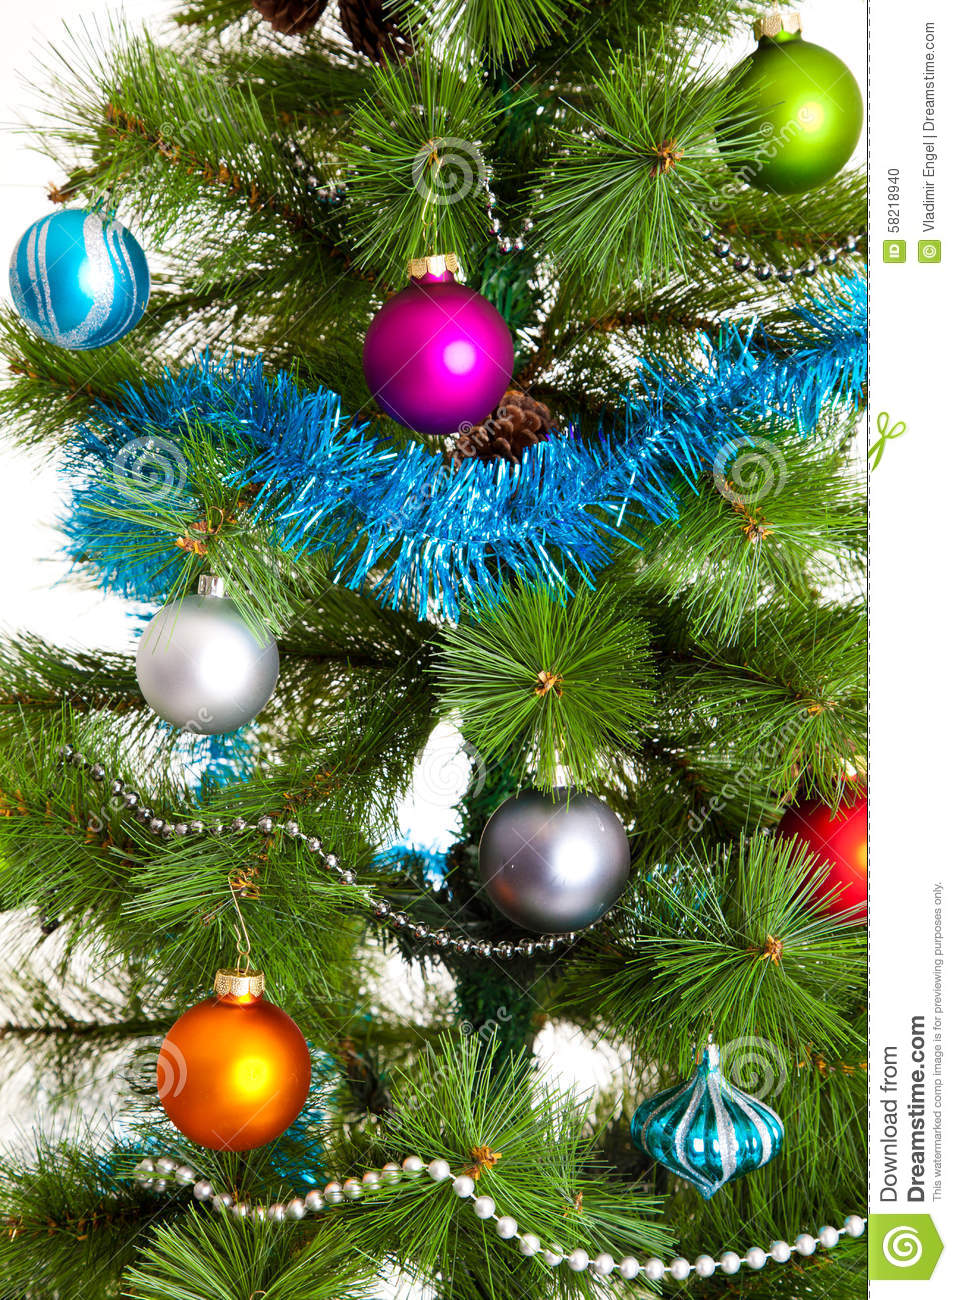 Christmas tree decorations 2016 happy new year stock Latest christmas decorations